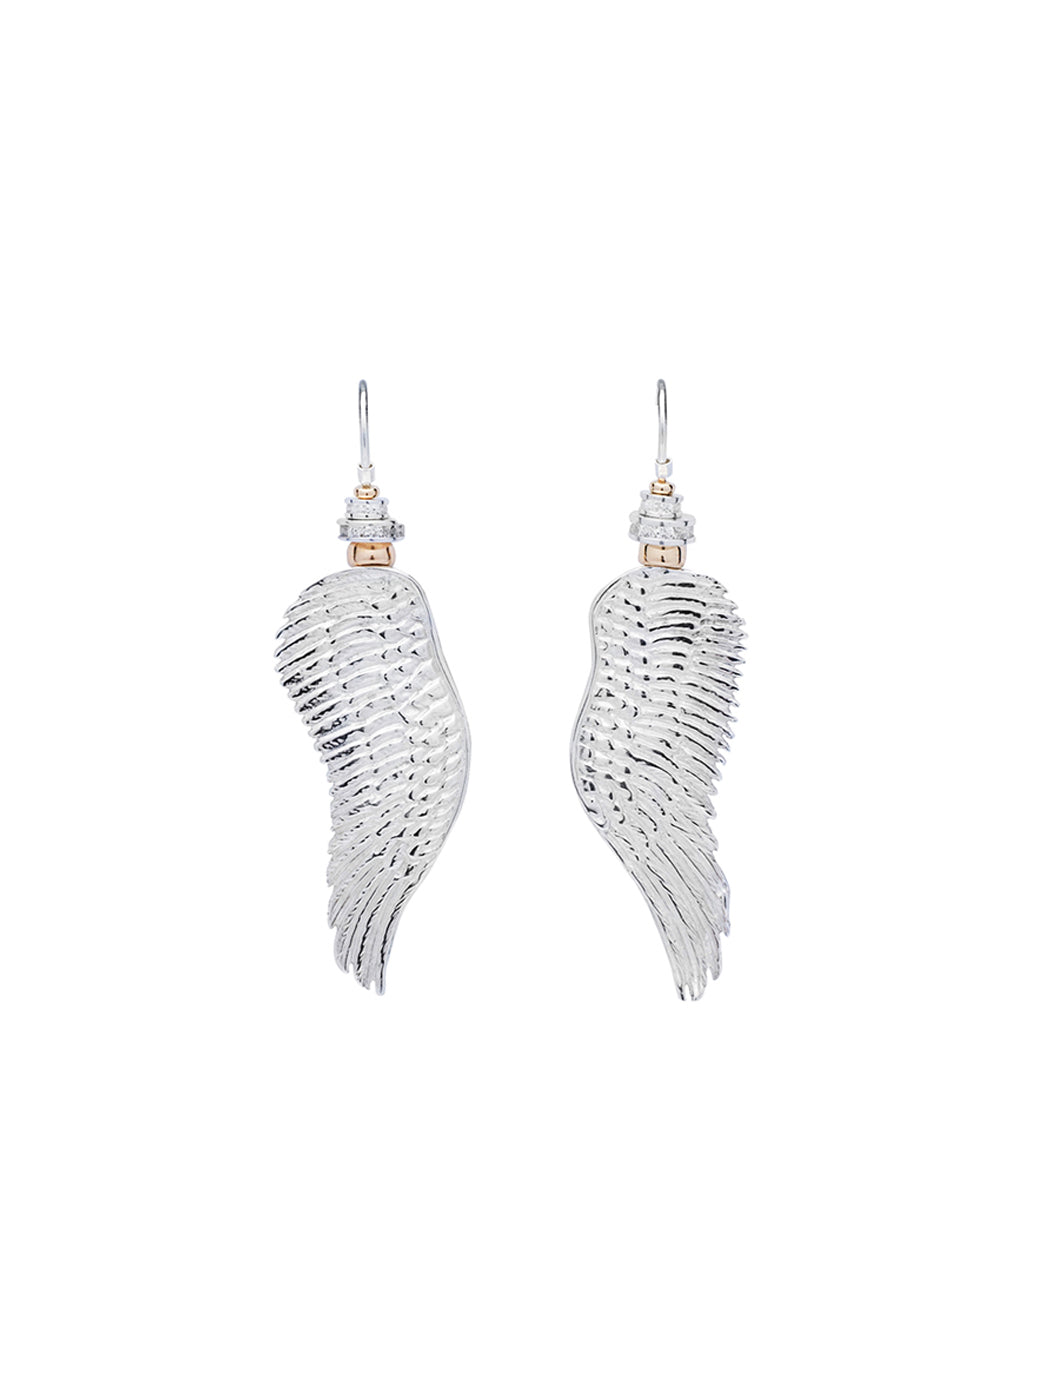 Fiorina Jewellery Aria Earrings